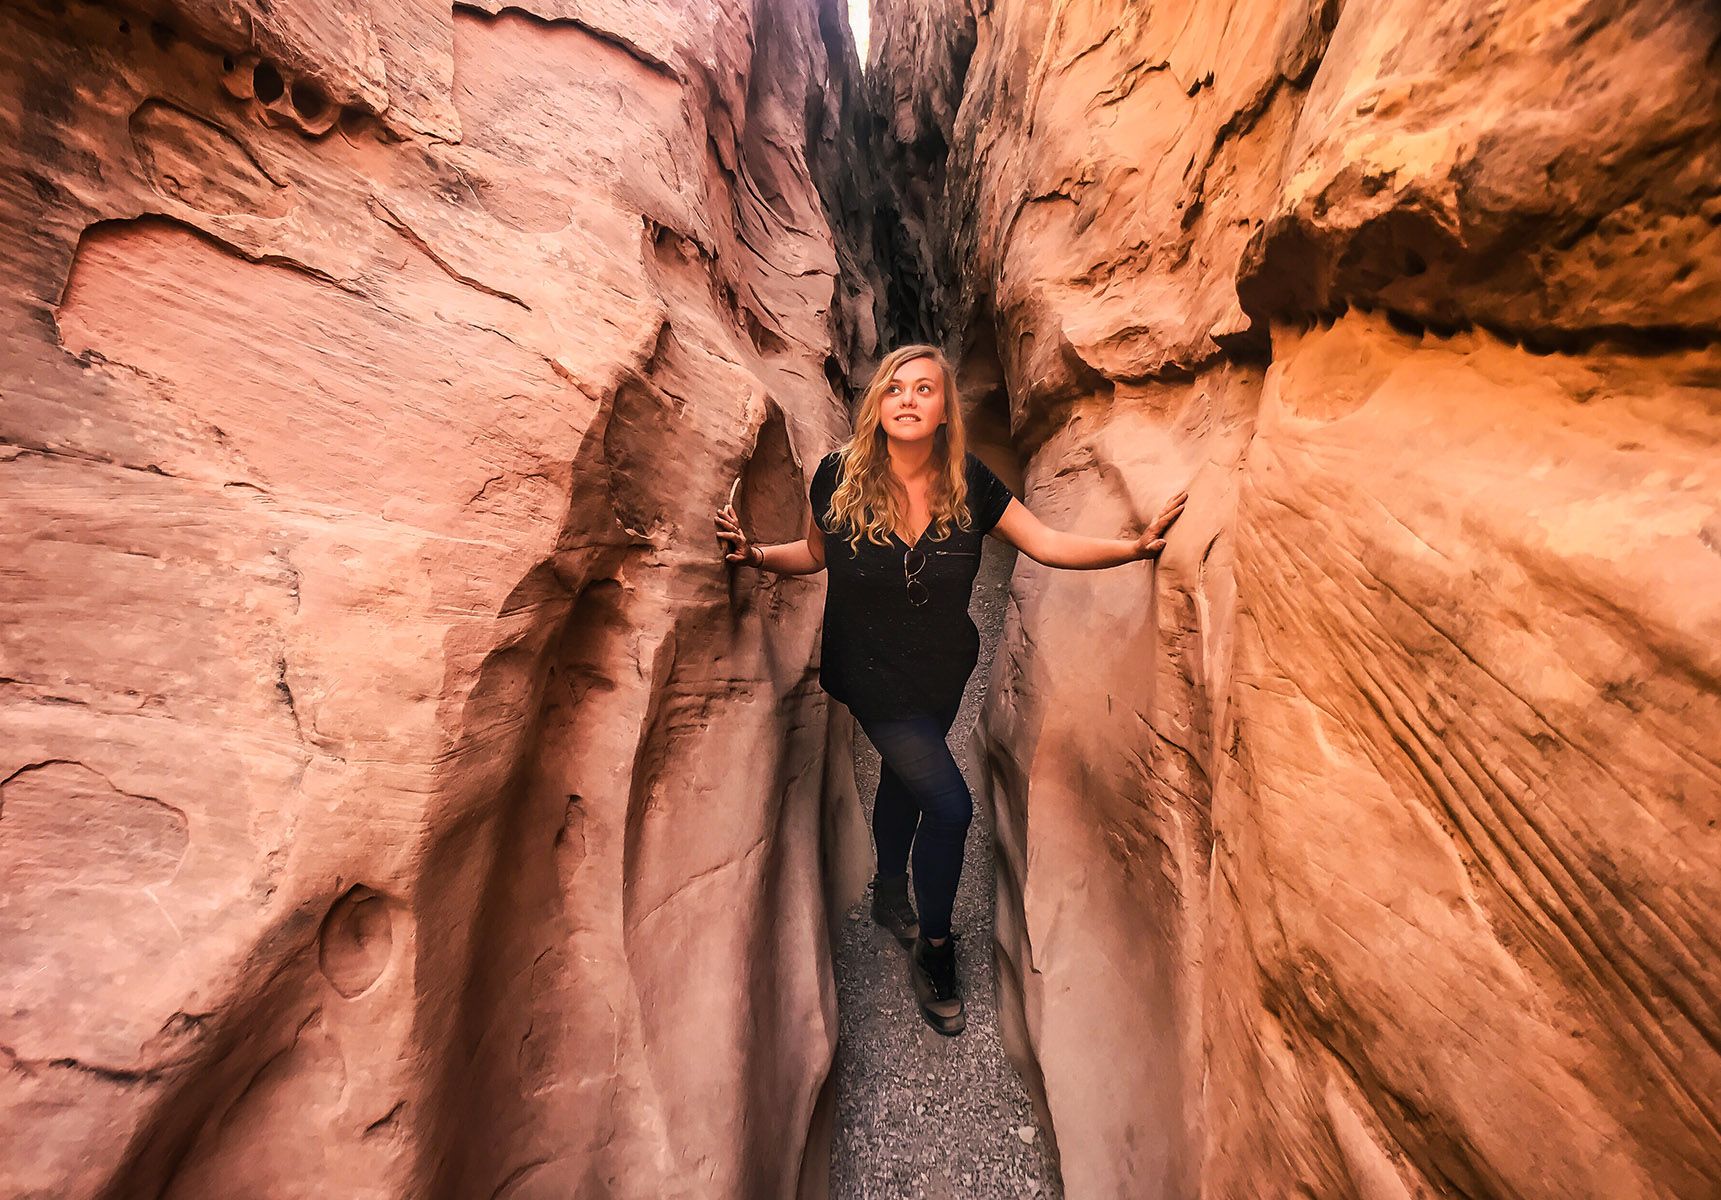 Little Wild Horse Canyon slot canyon utah randonnée usa road trip